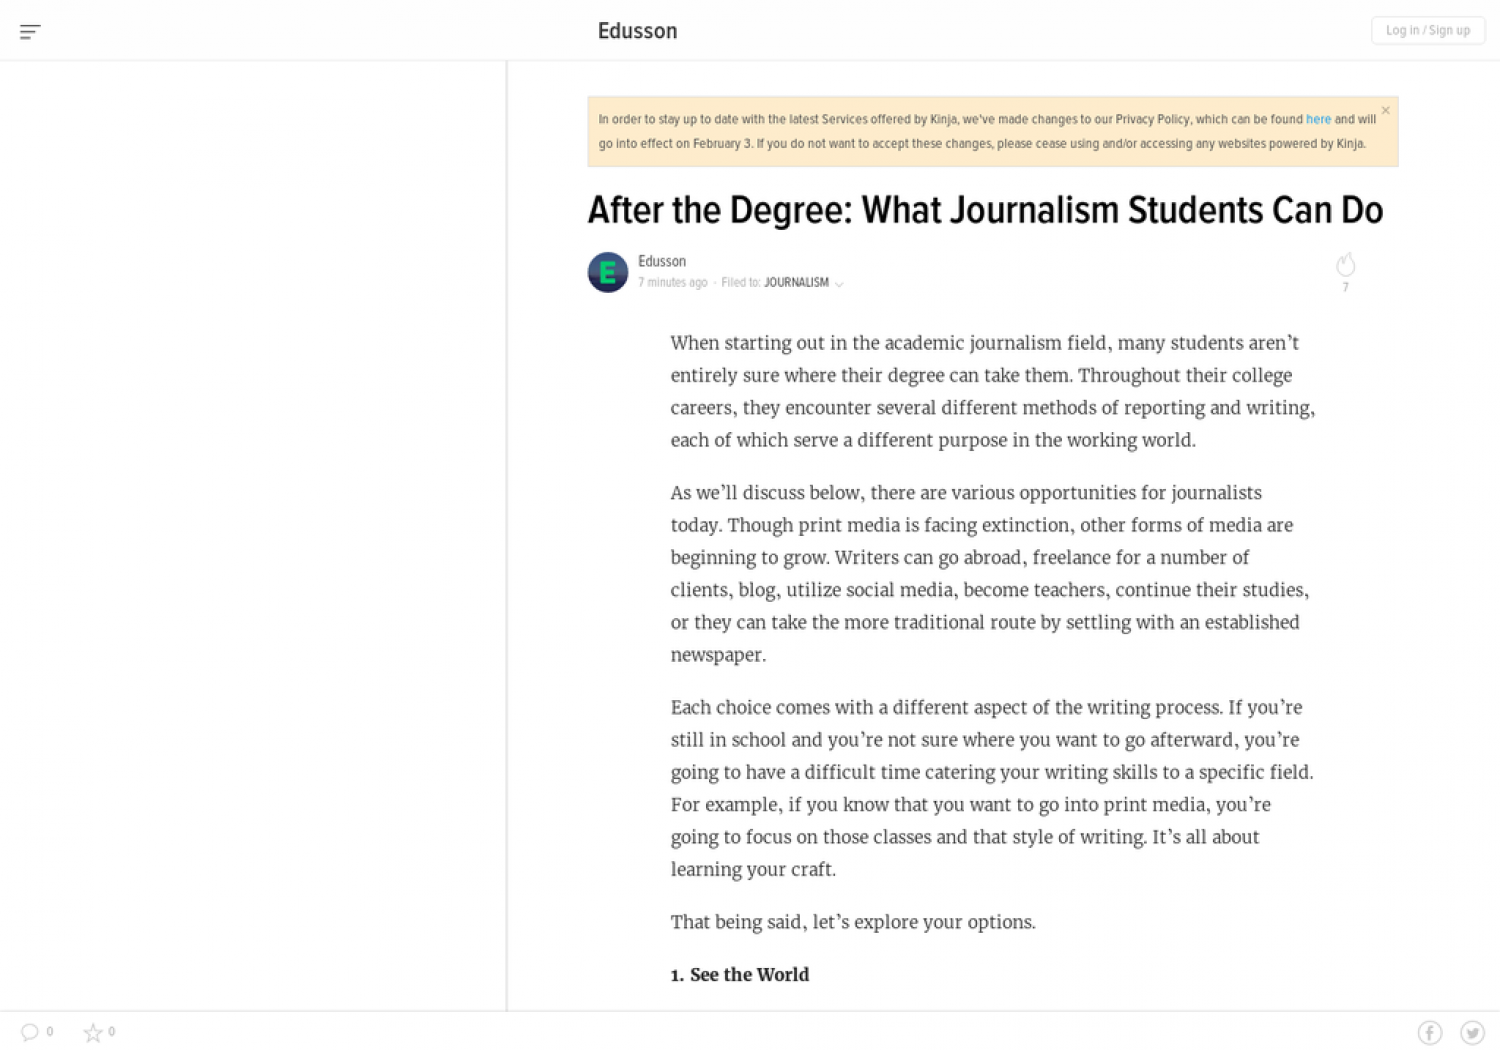 After the Degree: What Journalism Students Can Do Infographic